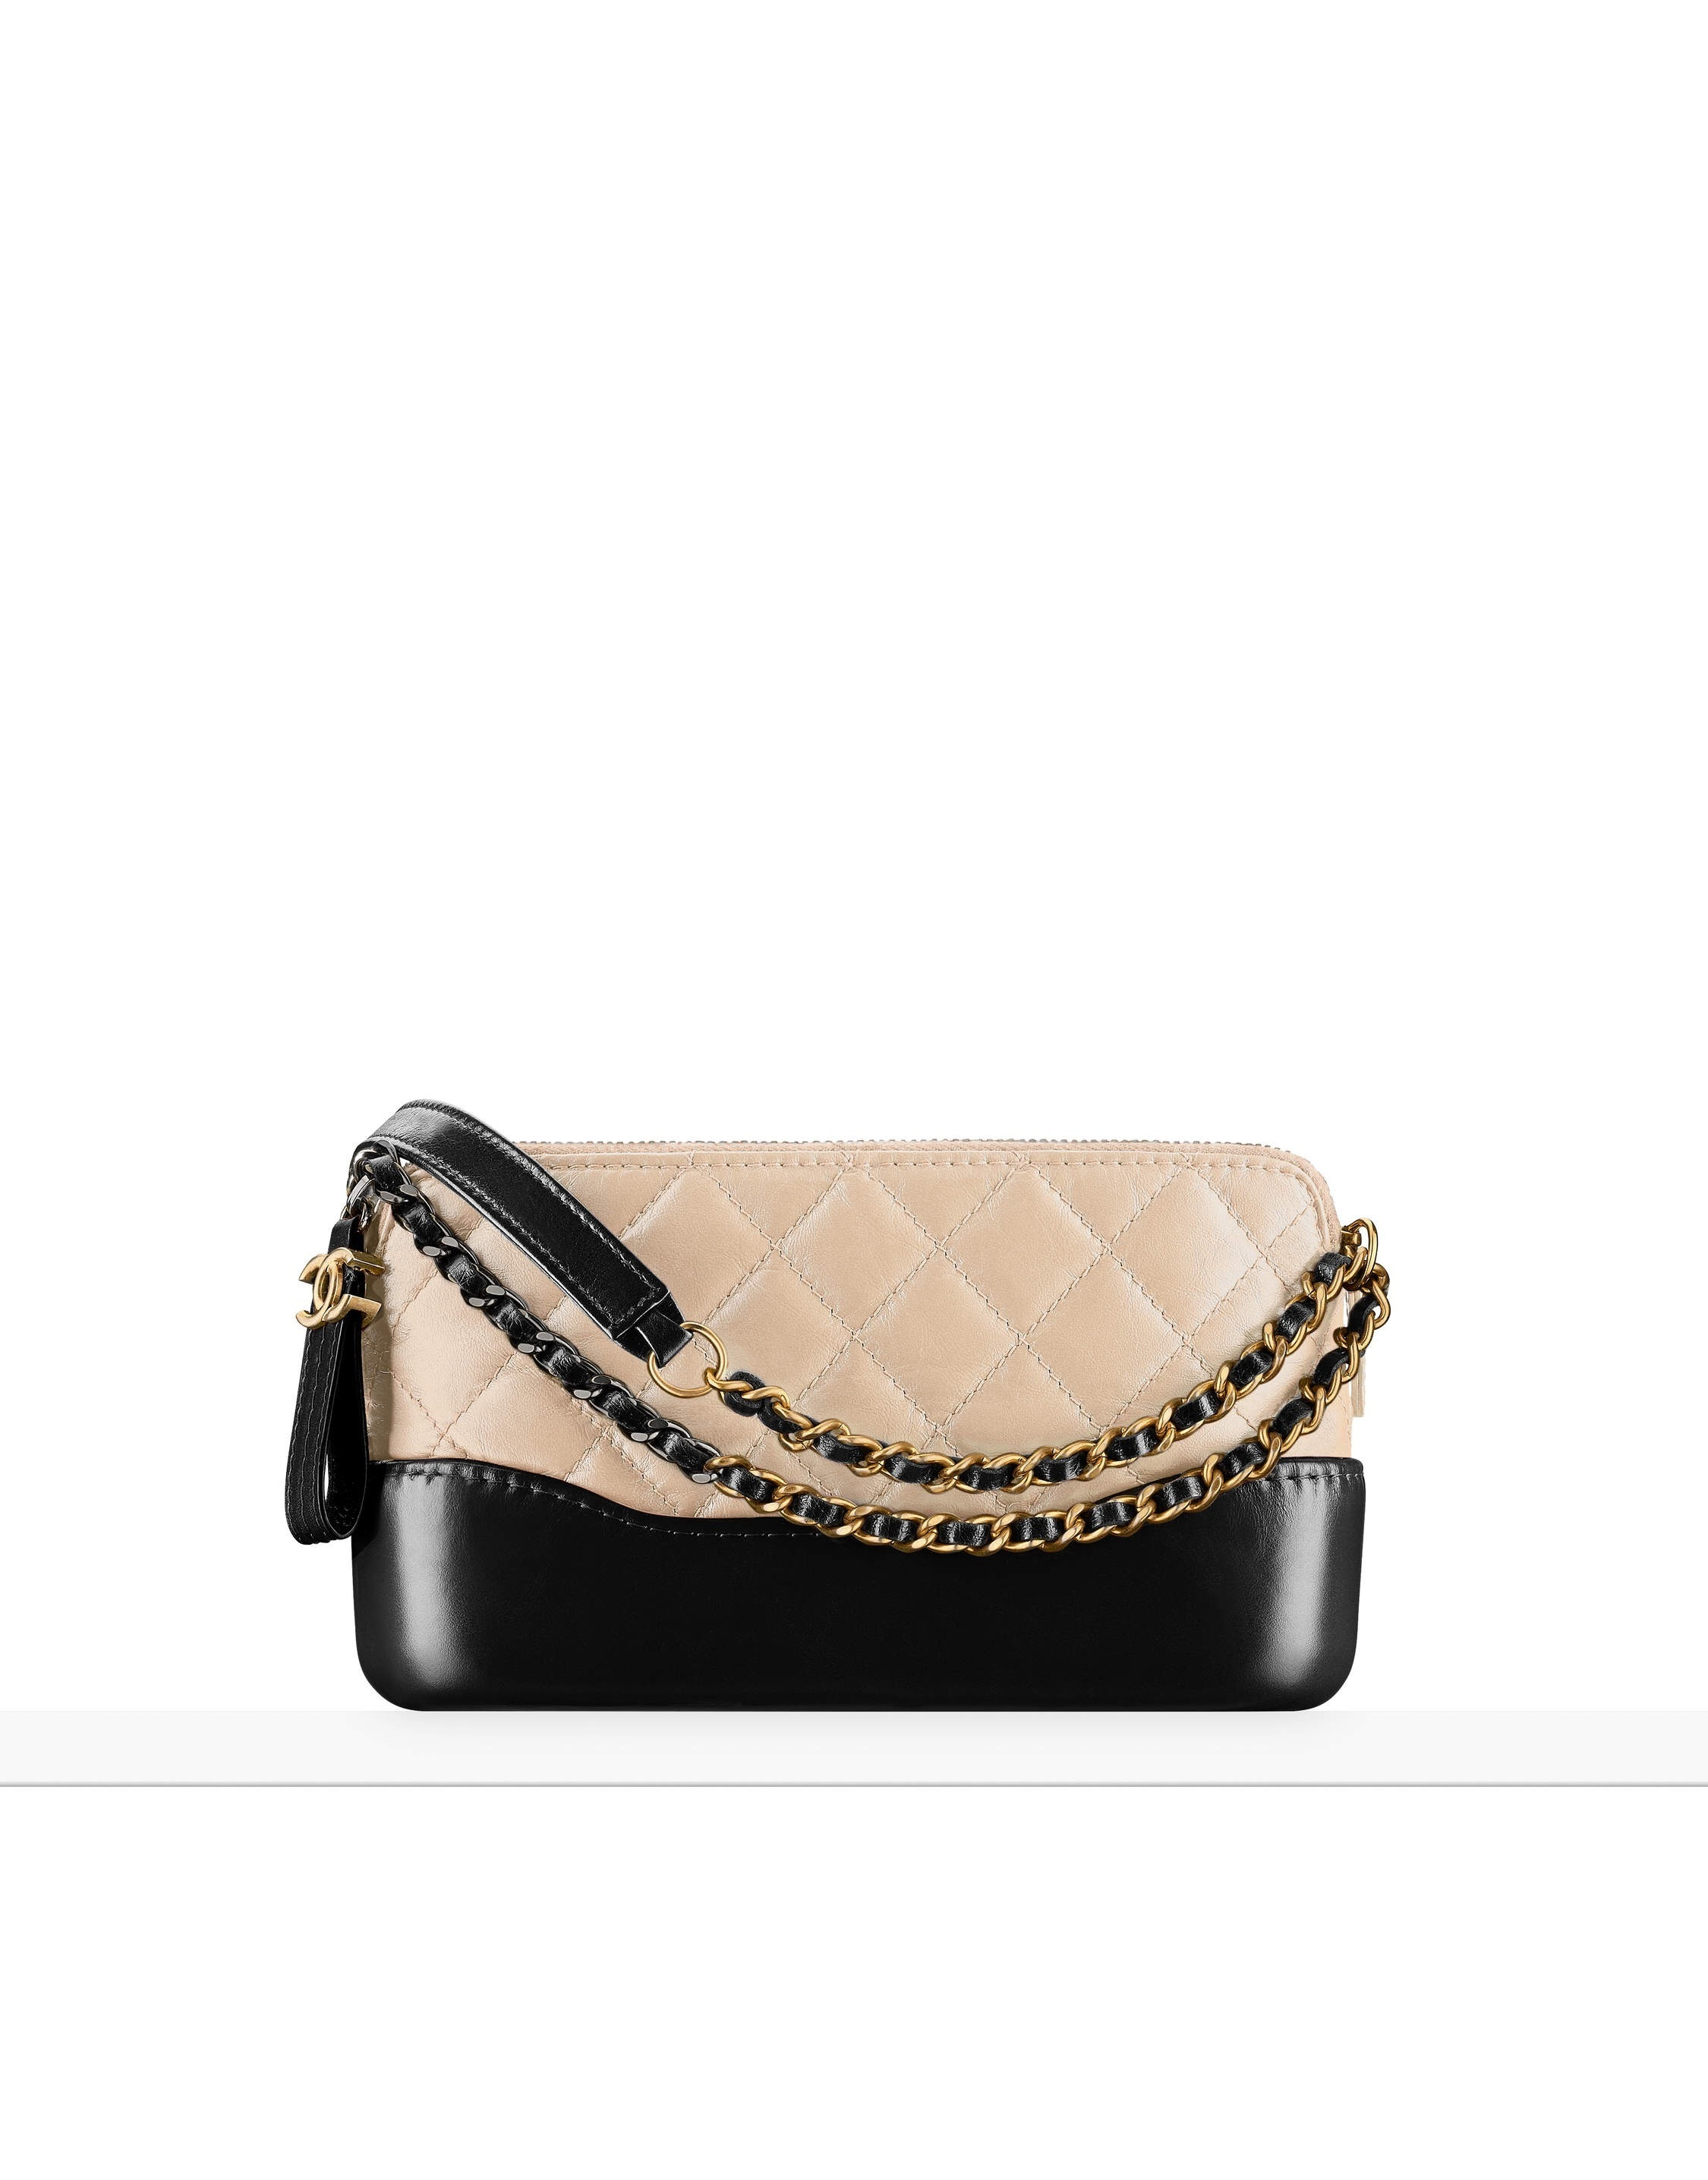 CHAIN CLUTCH チェーンポシェット シャネル 国内発送 2017AW